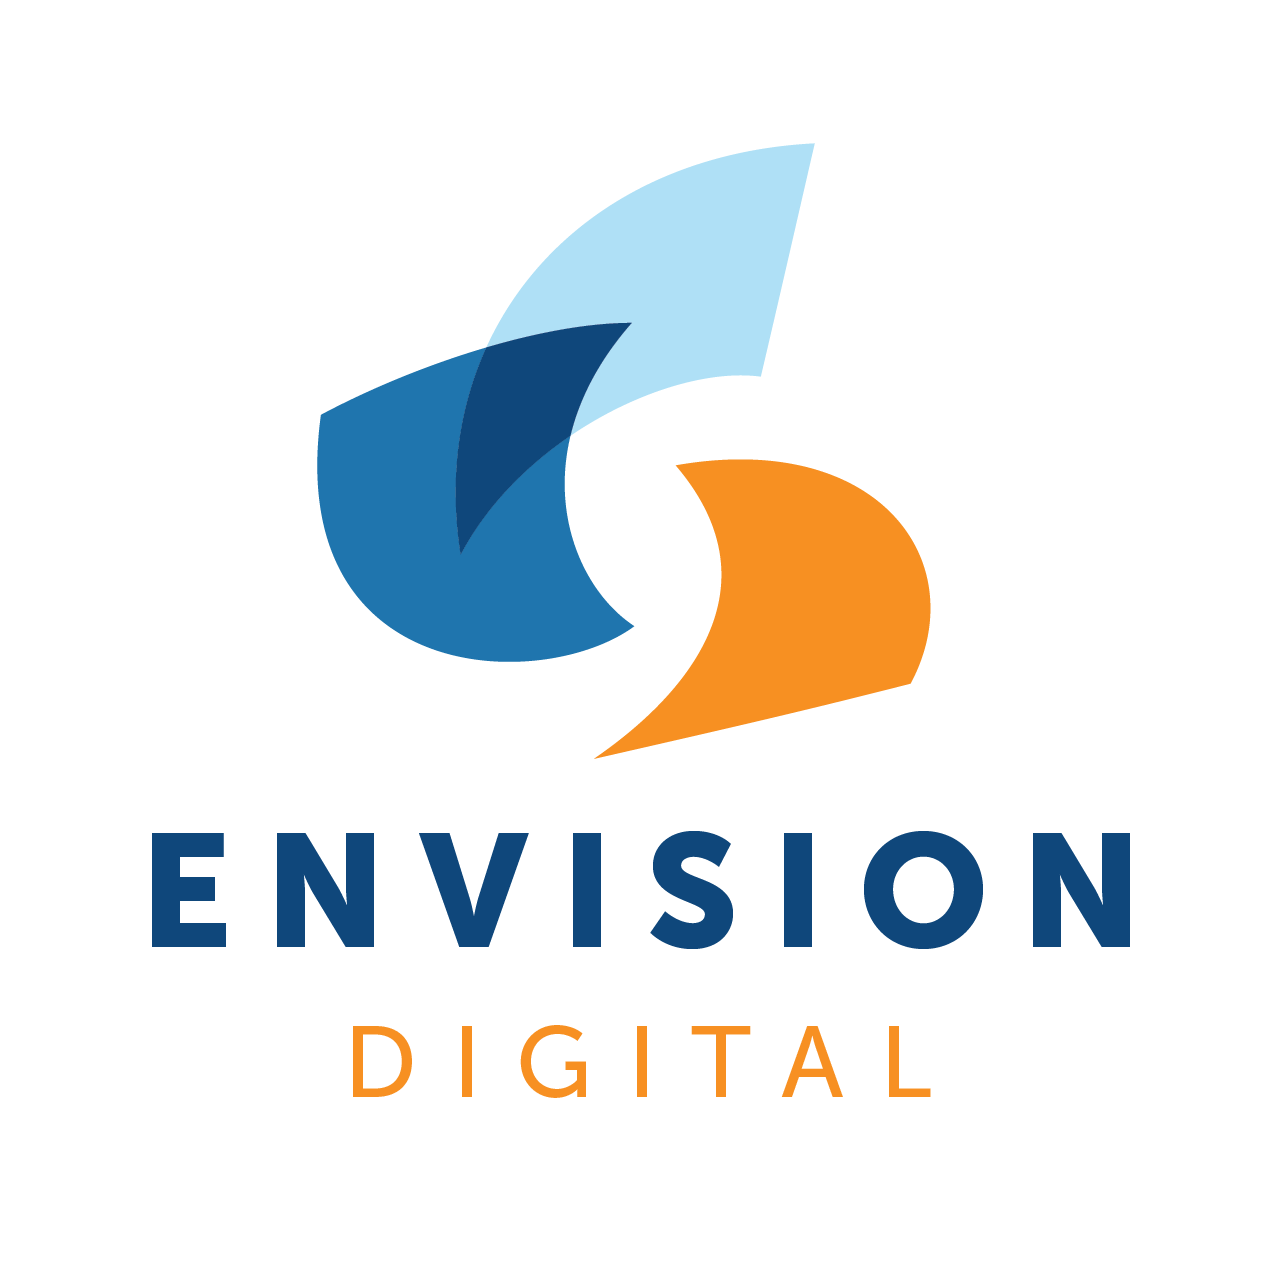 Envision Digital Group